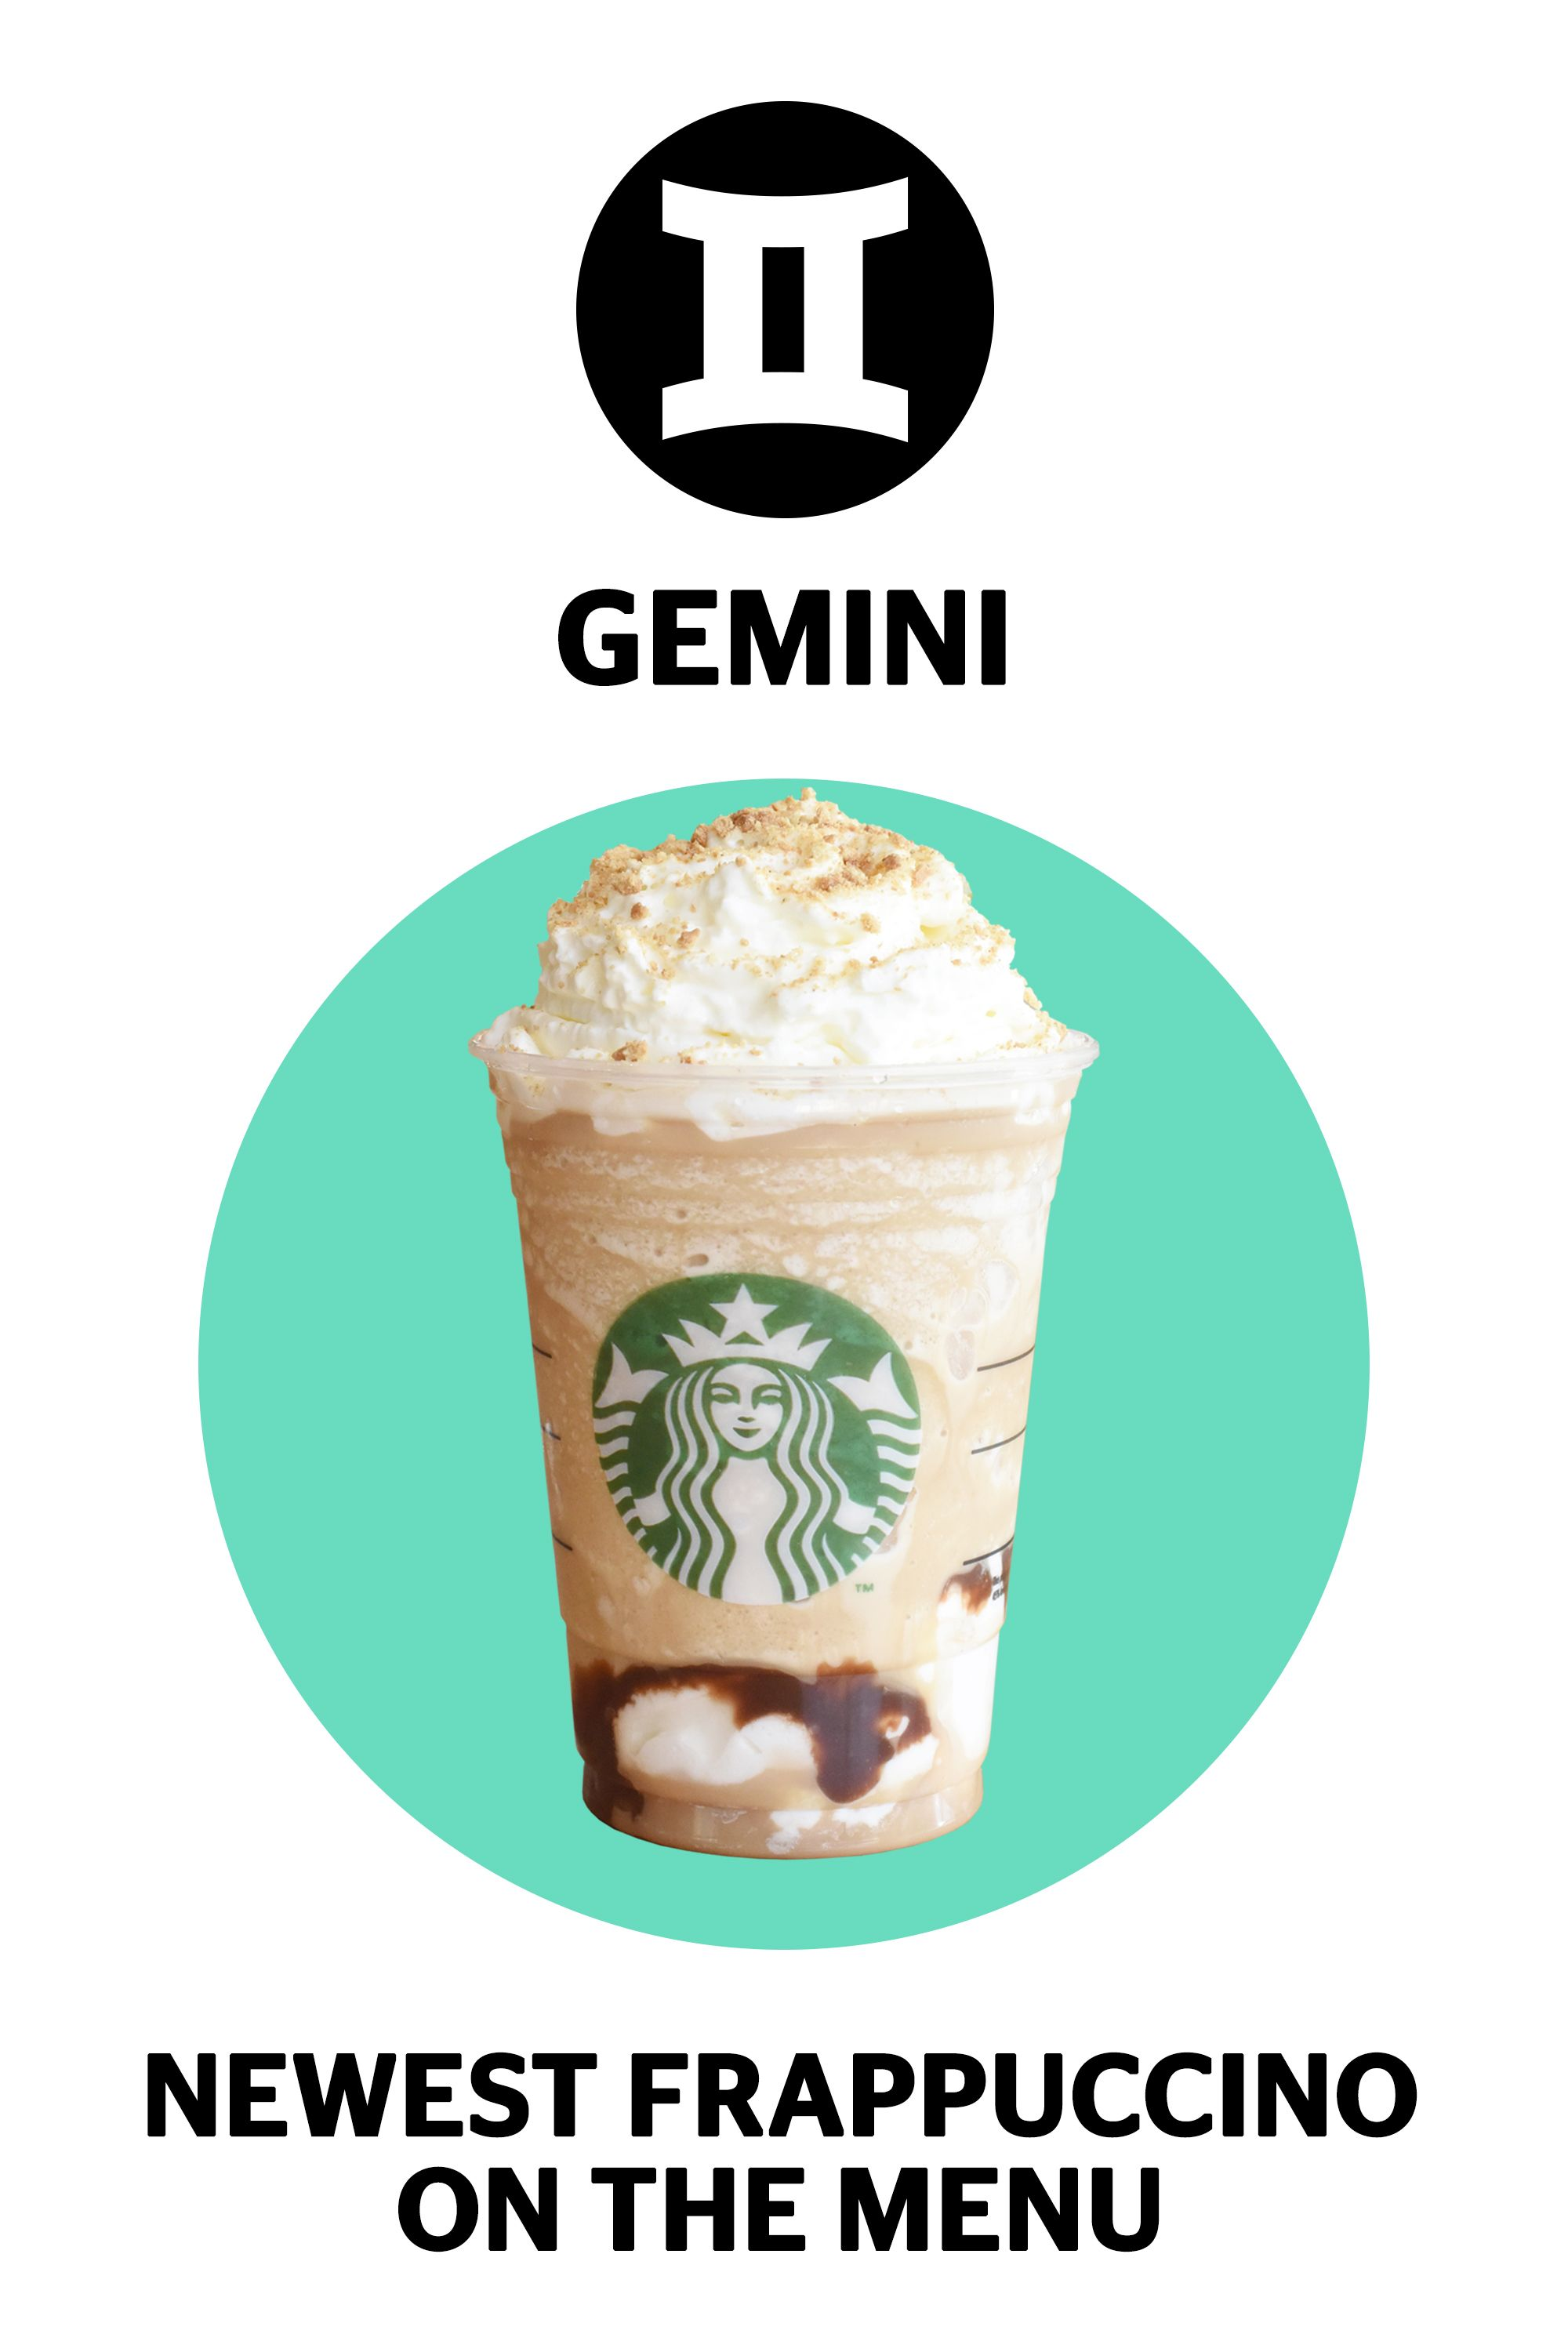 newest frappuccino, zodiac Starbucks drinks